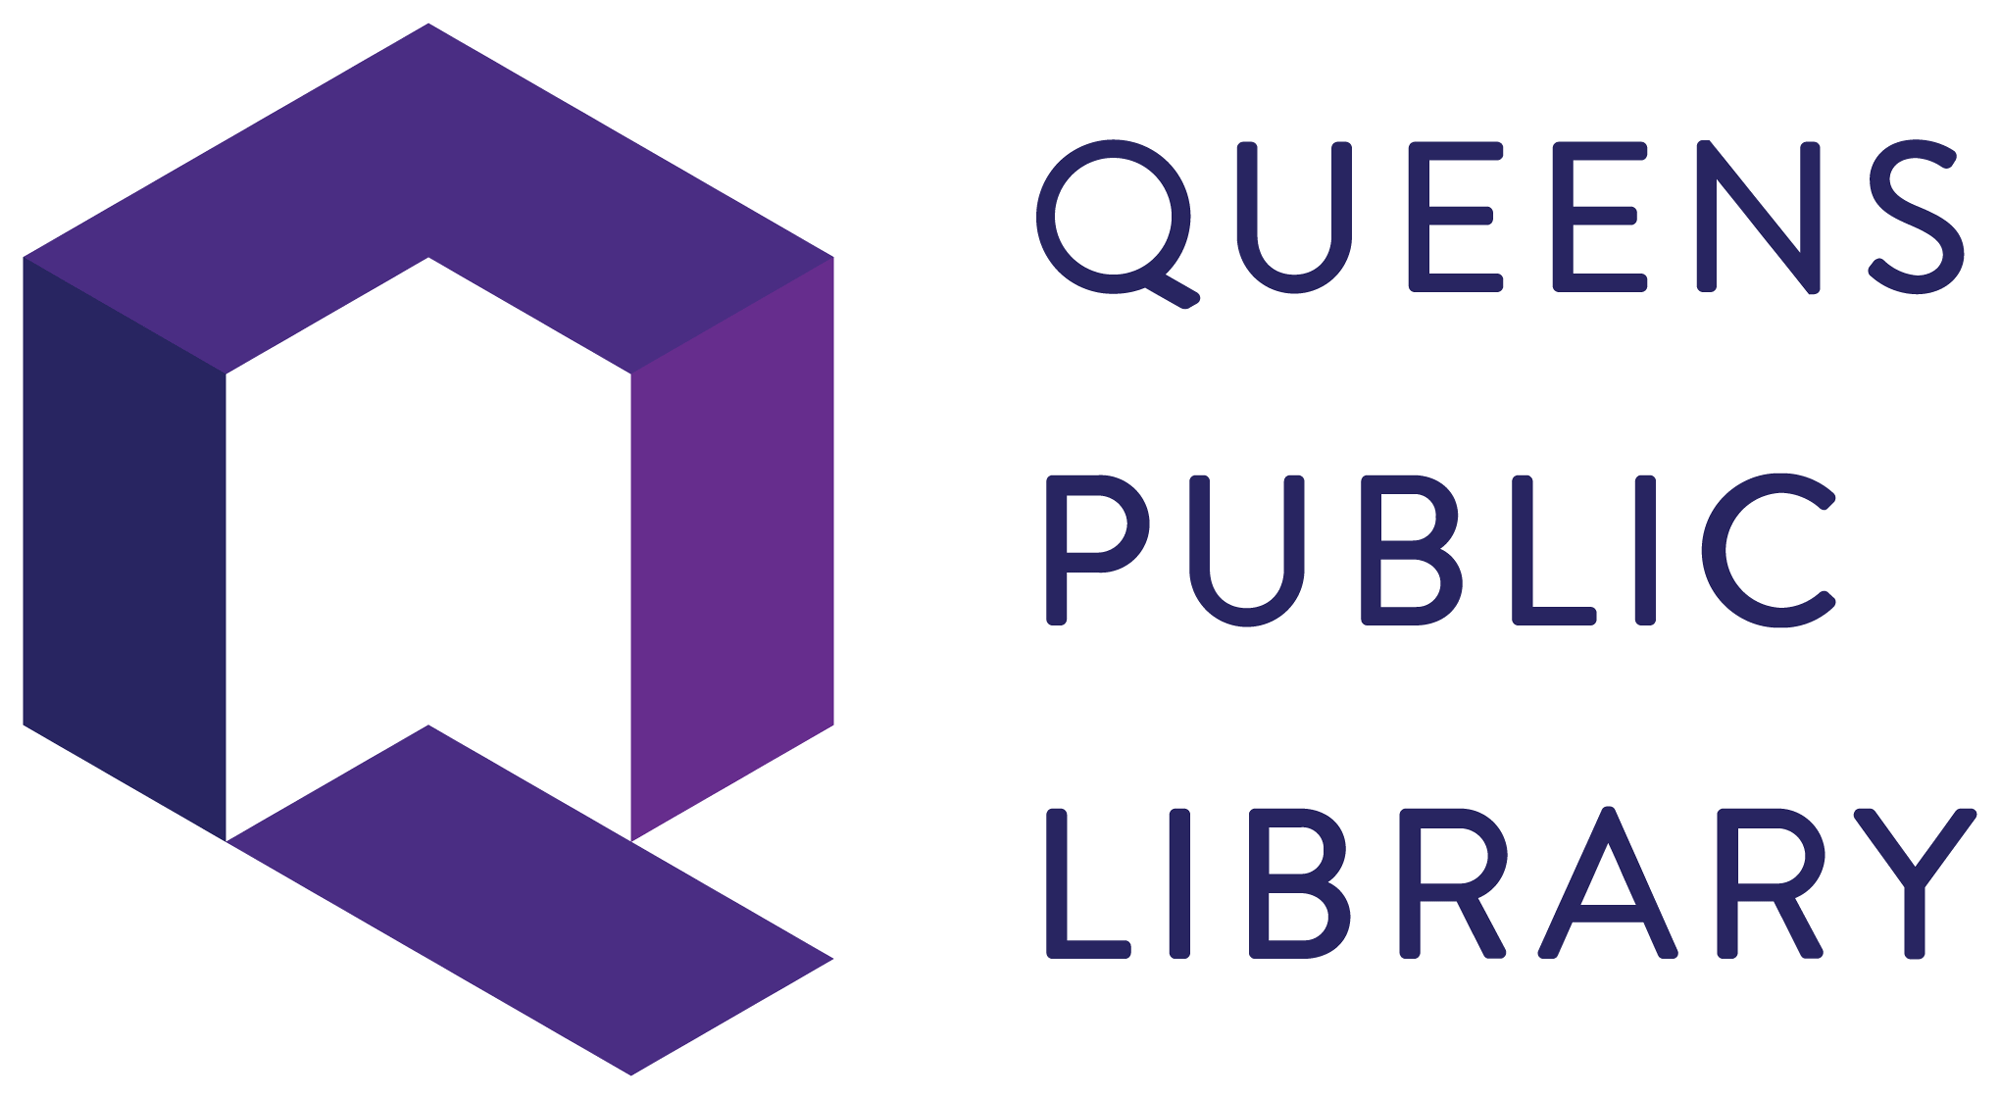 queens_public_library_logo.png